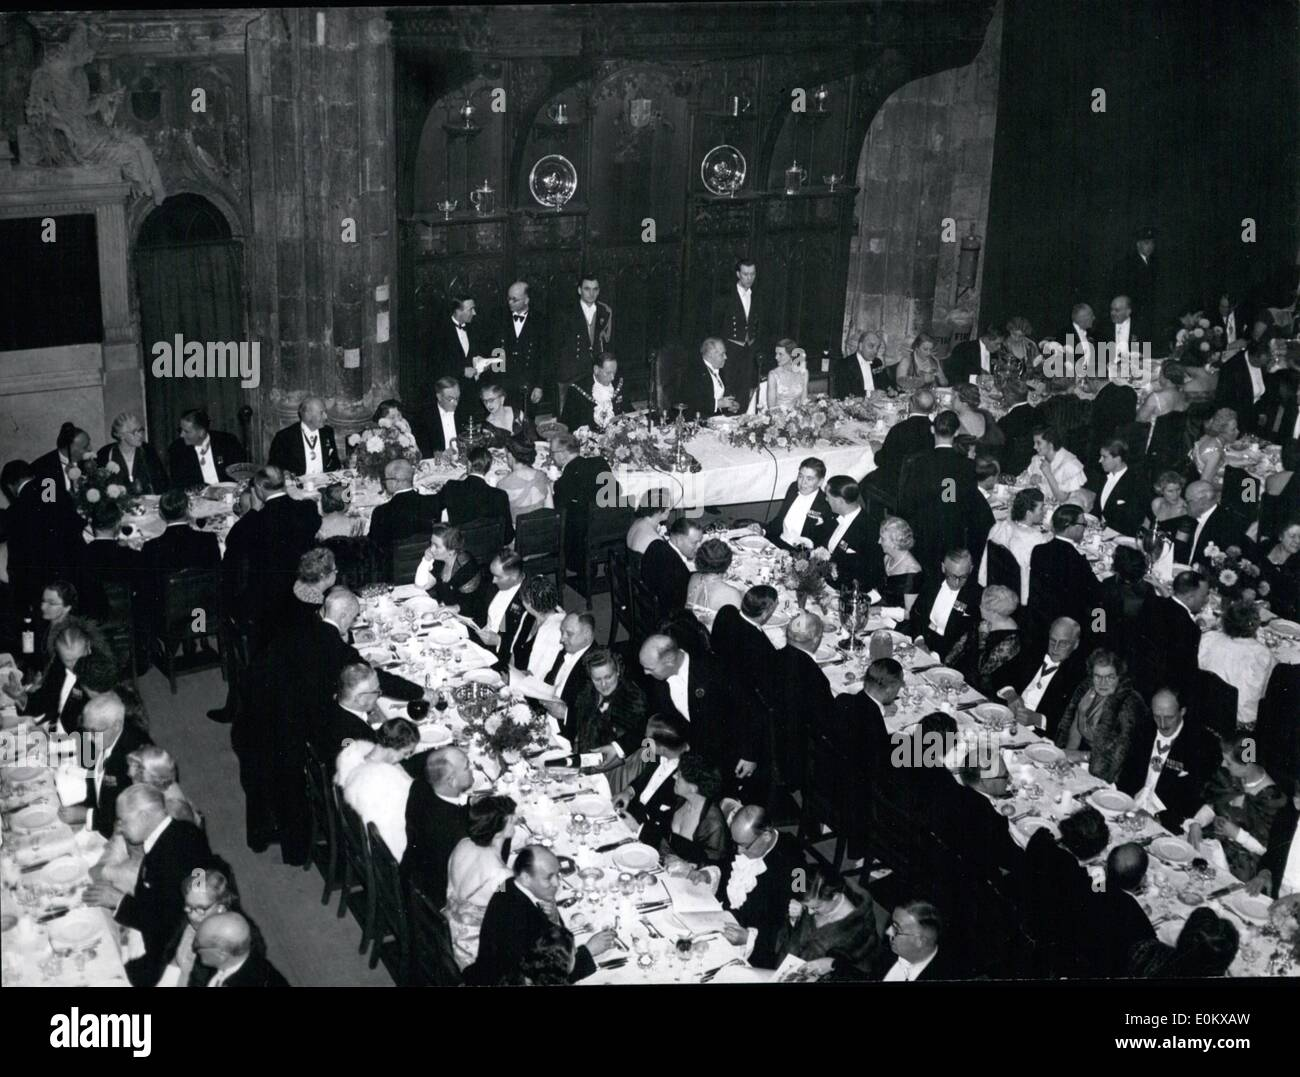 Nov. 11, 1950 - Historic setting for city livery club's annual dinner.: Last night in London's ancient Guildhall, the city Livery Club held its 36th annual banquet. Among the guests were the Lord and Lady Mayoress. The club was founded in 1914 to bind together the Liverymen of the various City Guilds by bonds of common interest in defence of all the citizens hold dear. Photo shows the scene in London's ancient Guildhall last night when the City Livery Club held its 36th. annual banquet. The Lord Mayor and Lady Mayoress seen in the picture were chief guests of honour. - Stock Image